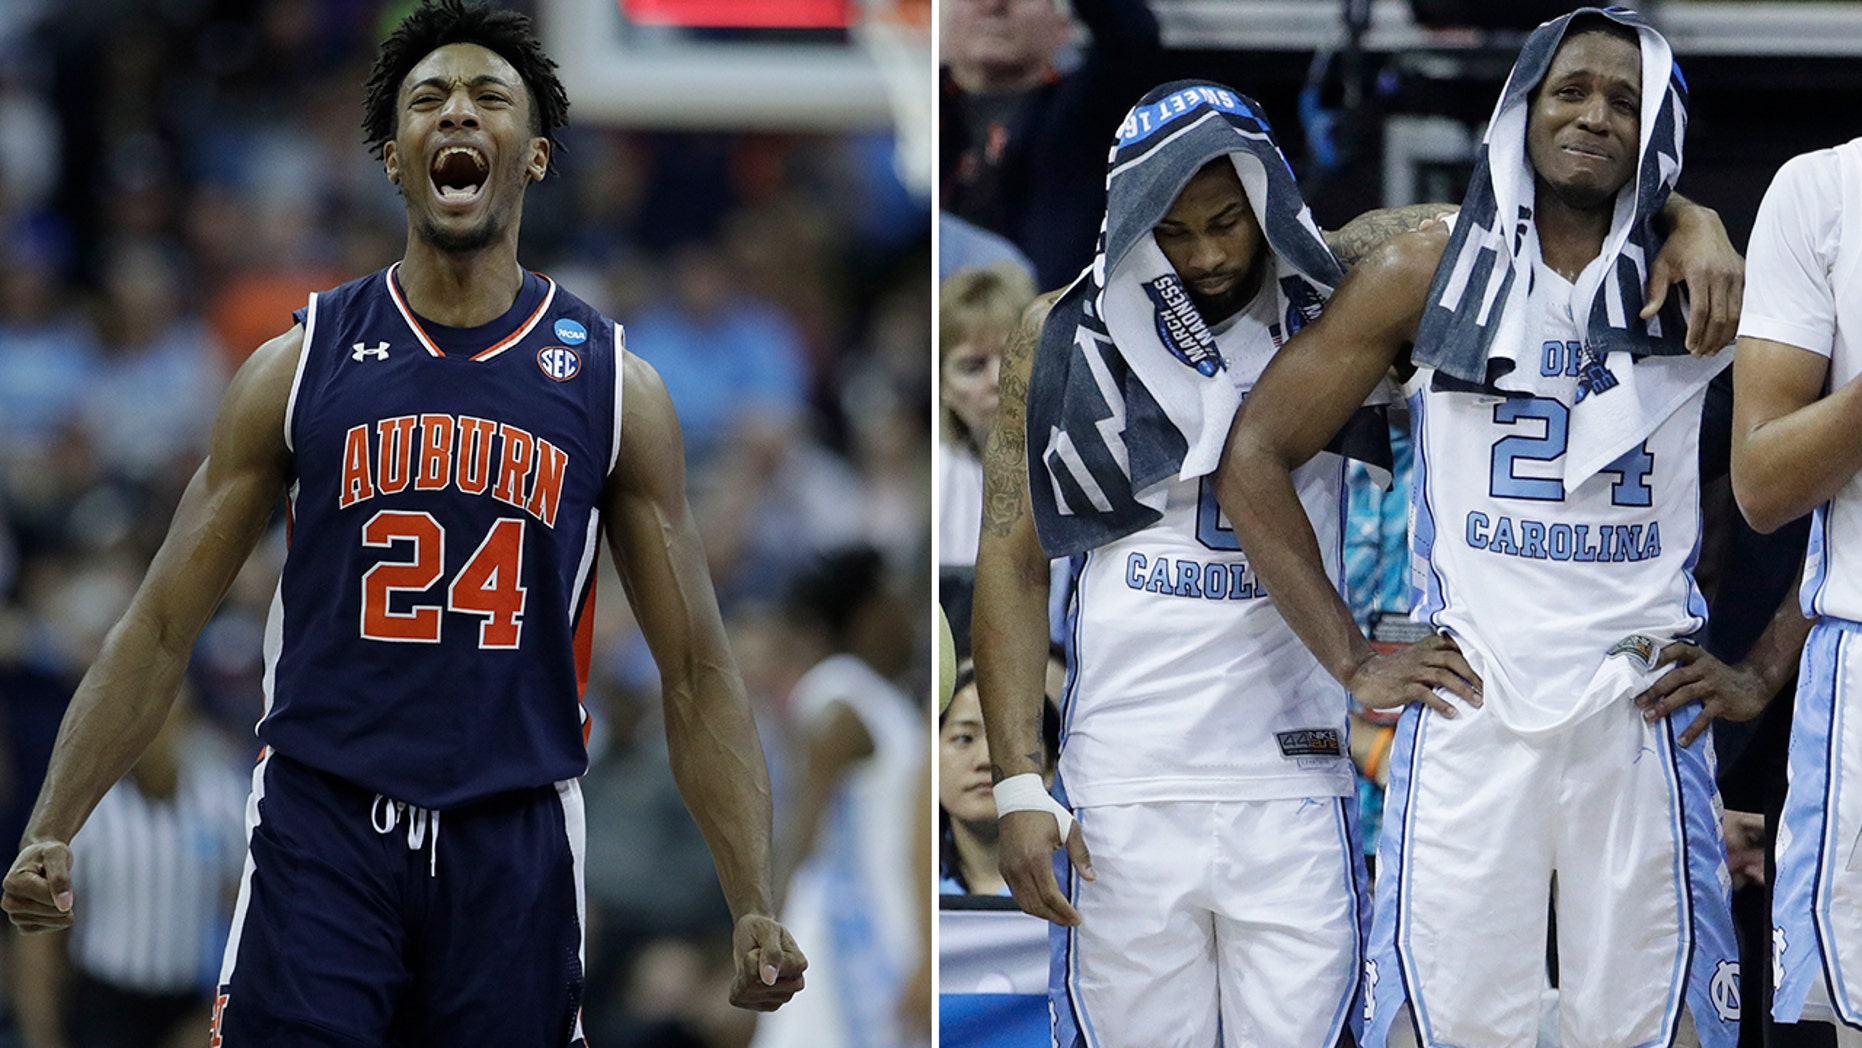 No. 5 Auburn upset top-seeded North Carolina to advance to the Elite 8 in just some of the Sweet 16 action Friday night. (Associated Press)